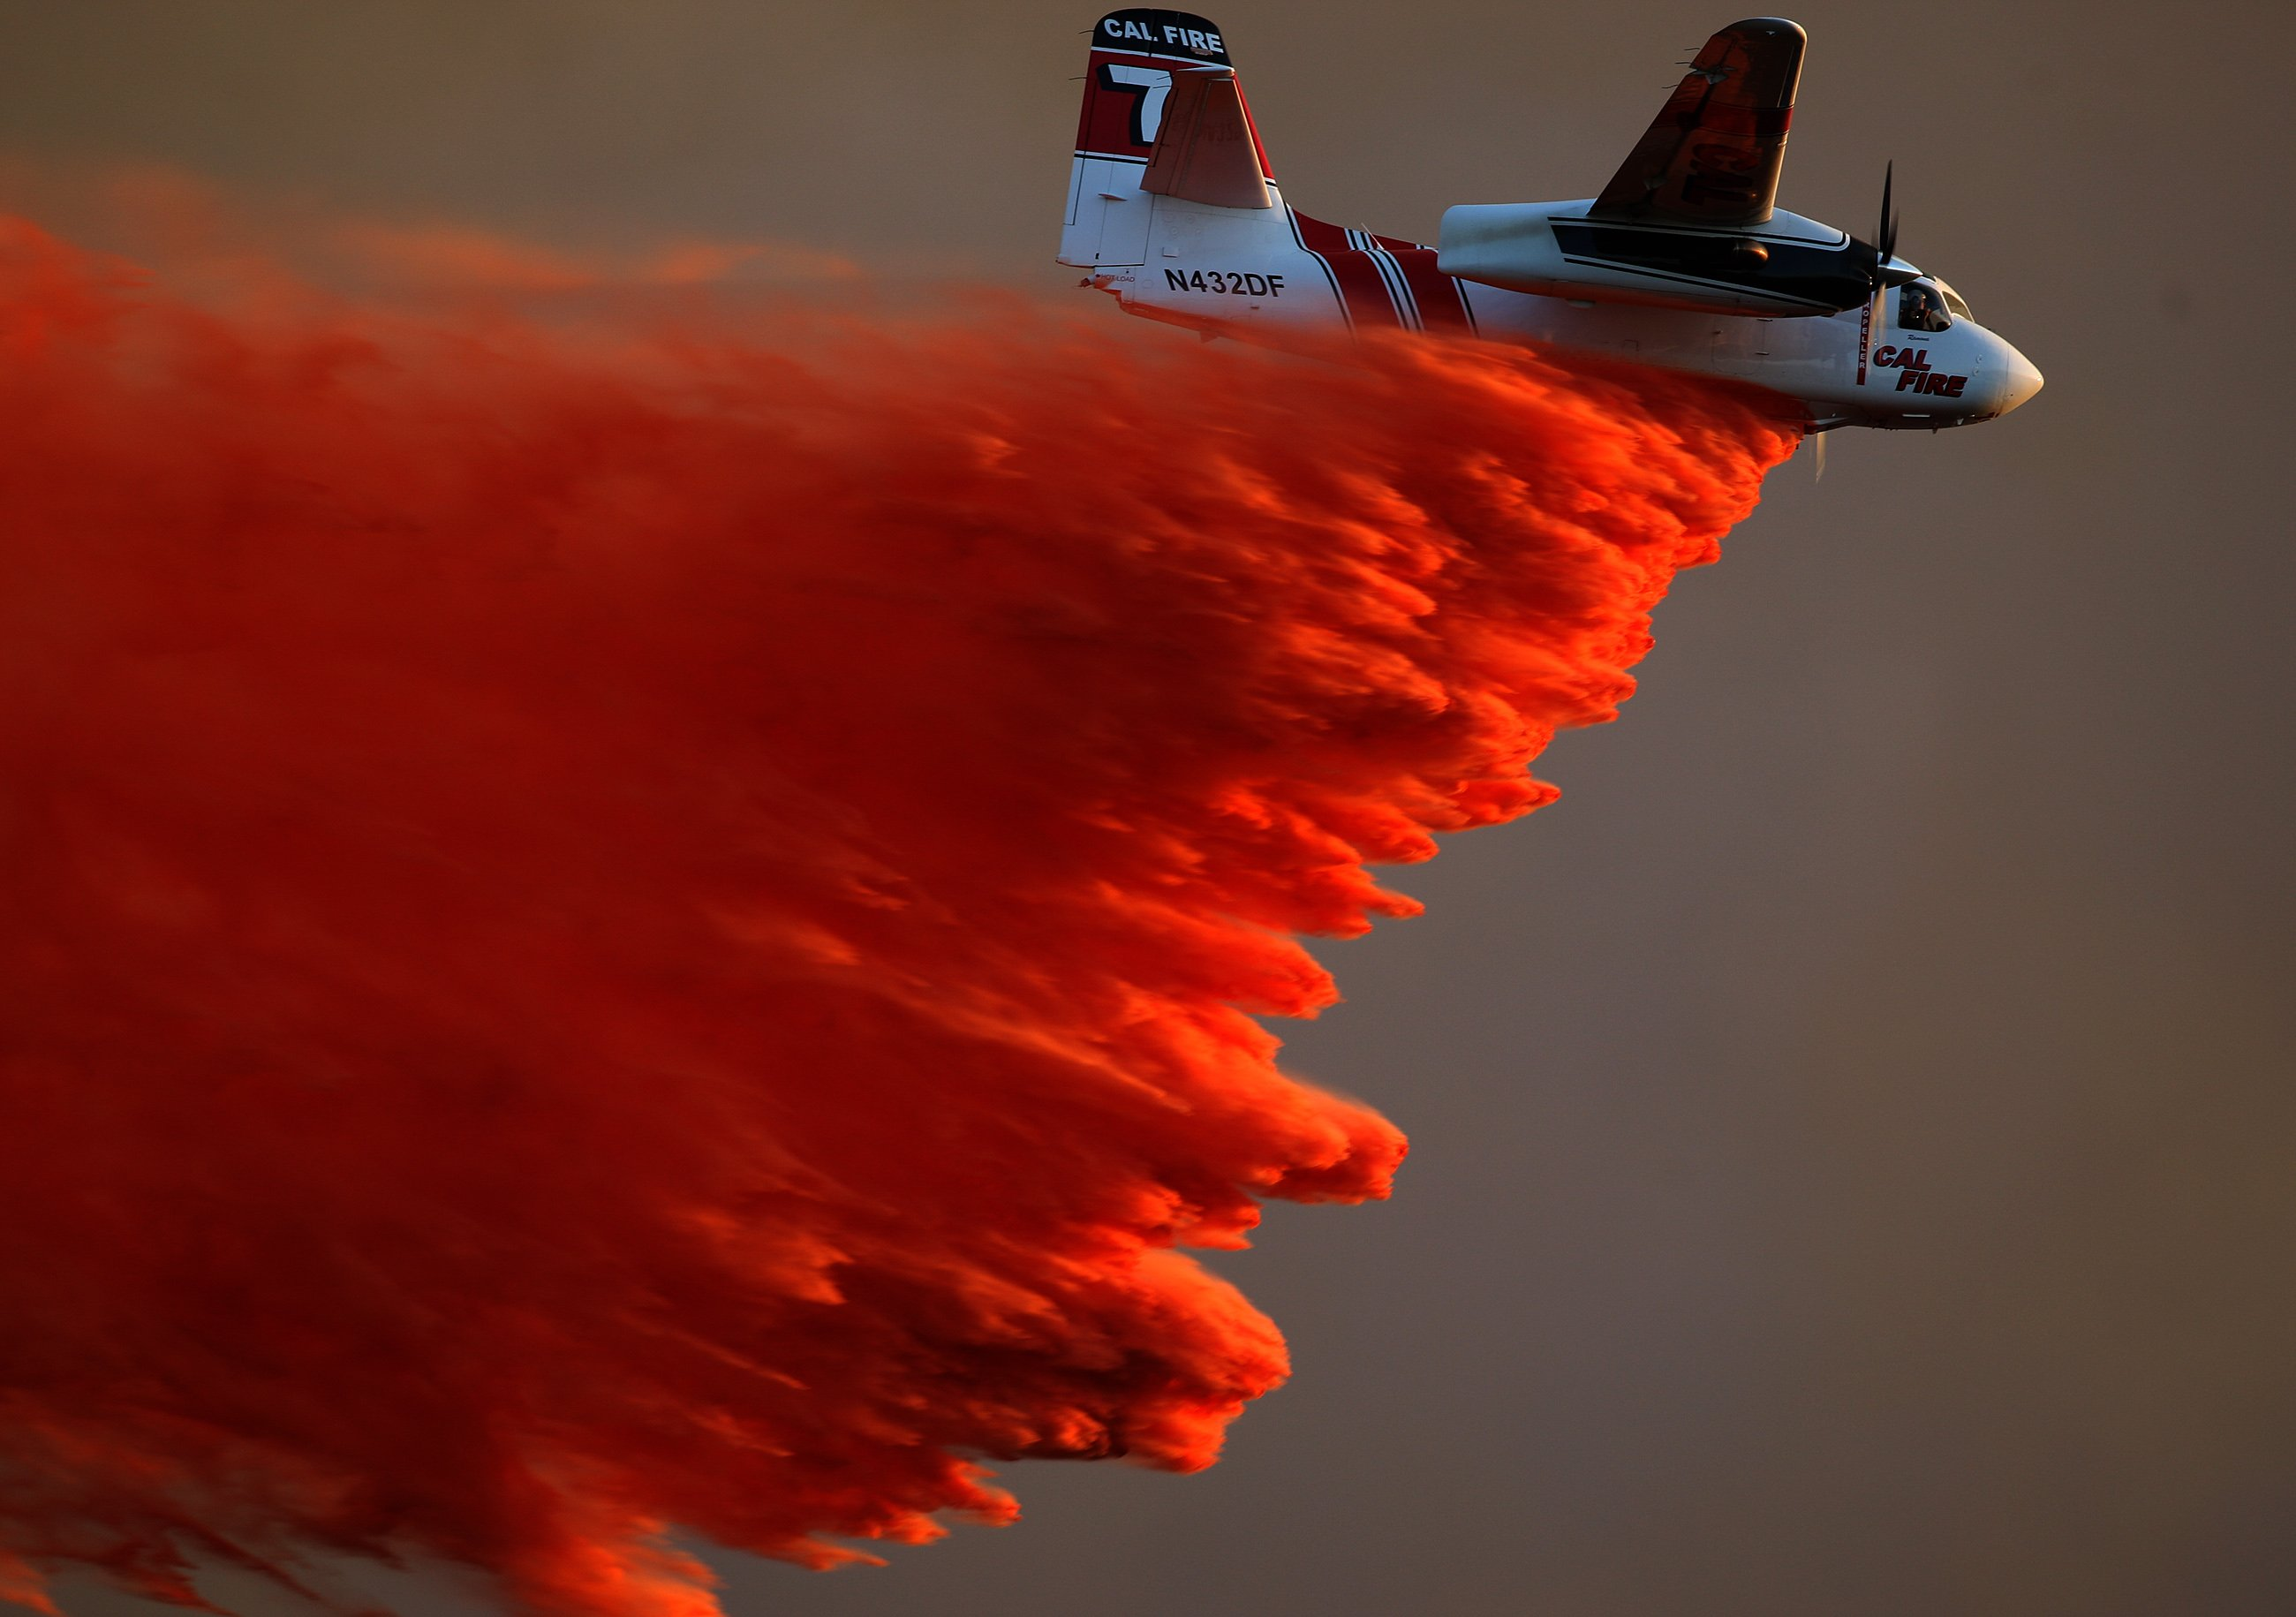 A Cal Fire airplane drops fire retardant on brush near Cal State San Marcos as crews battle a large wildfire threatening homes on May 14, 2014 in San Diego.